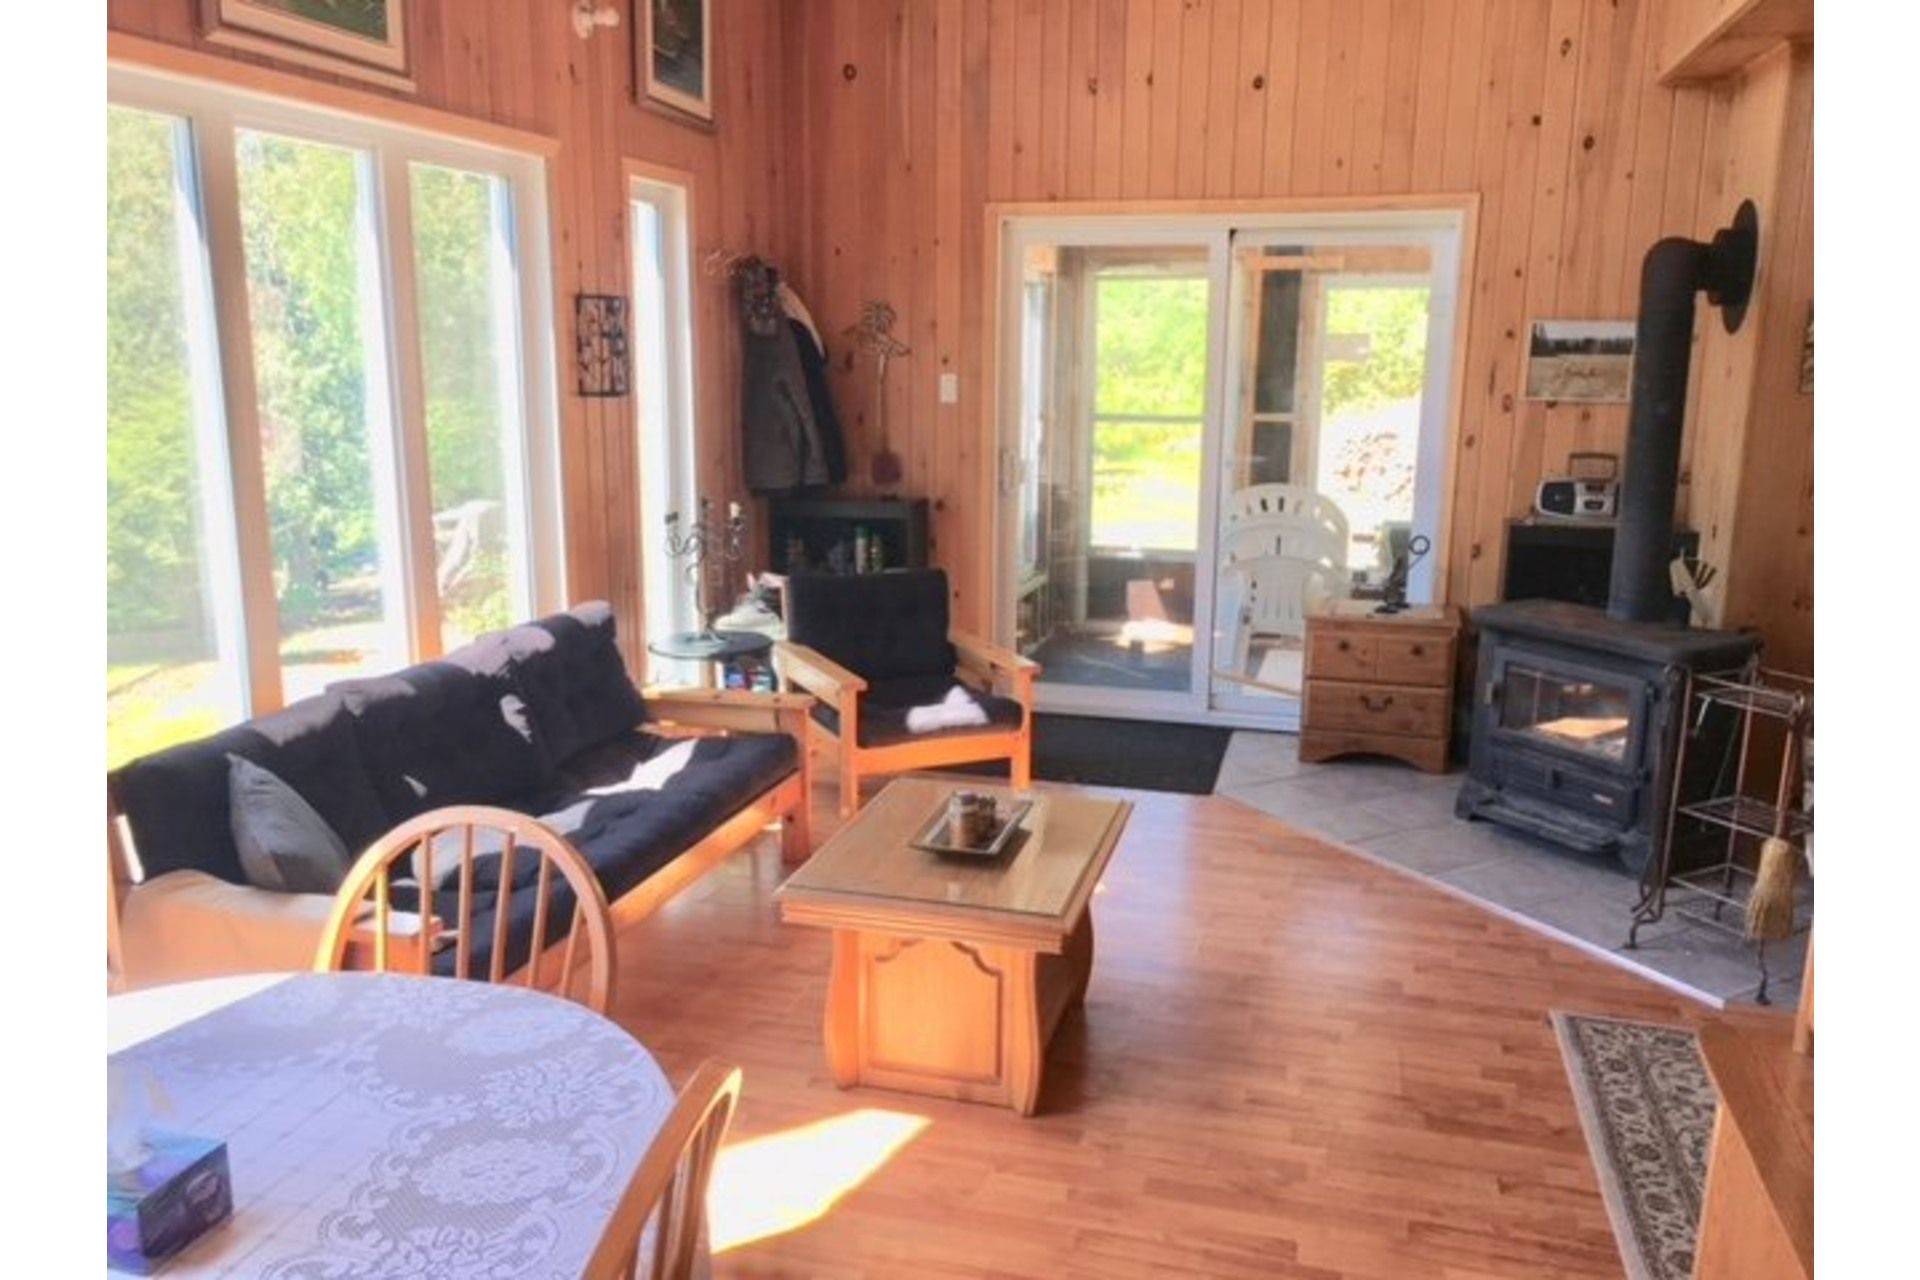 image 4 - House For sale Baie-de-la-Bouteille - 13 rooms